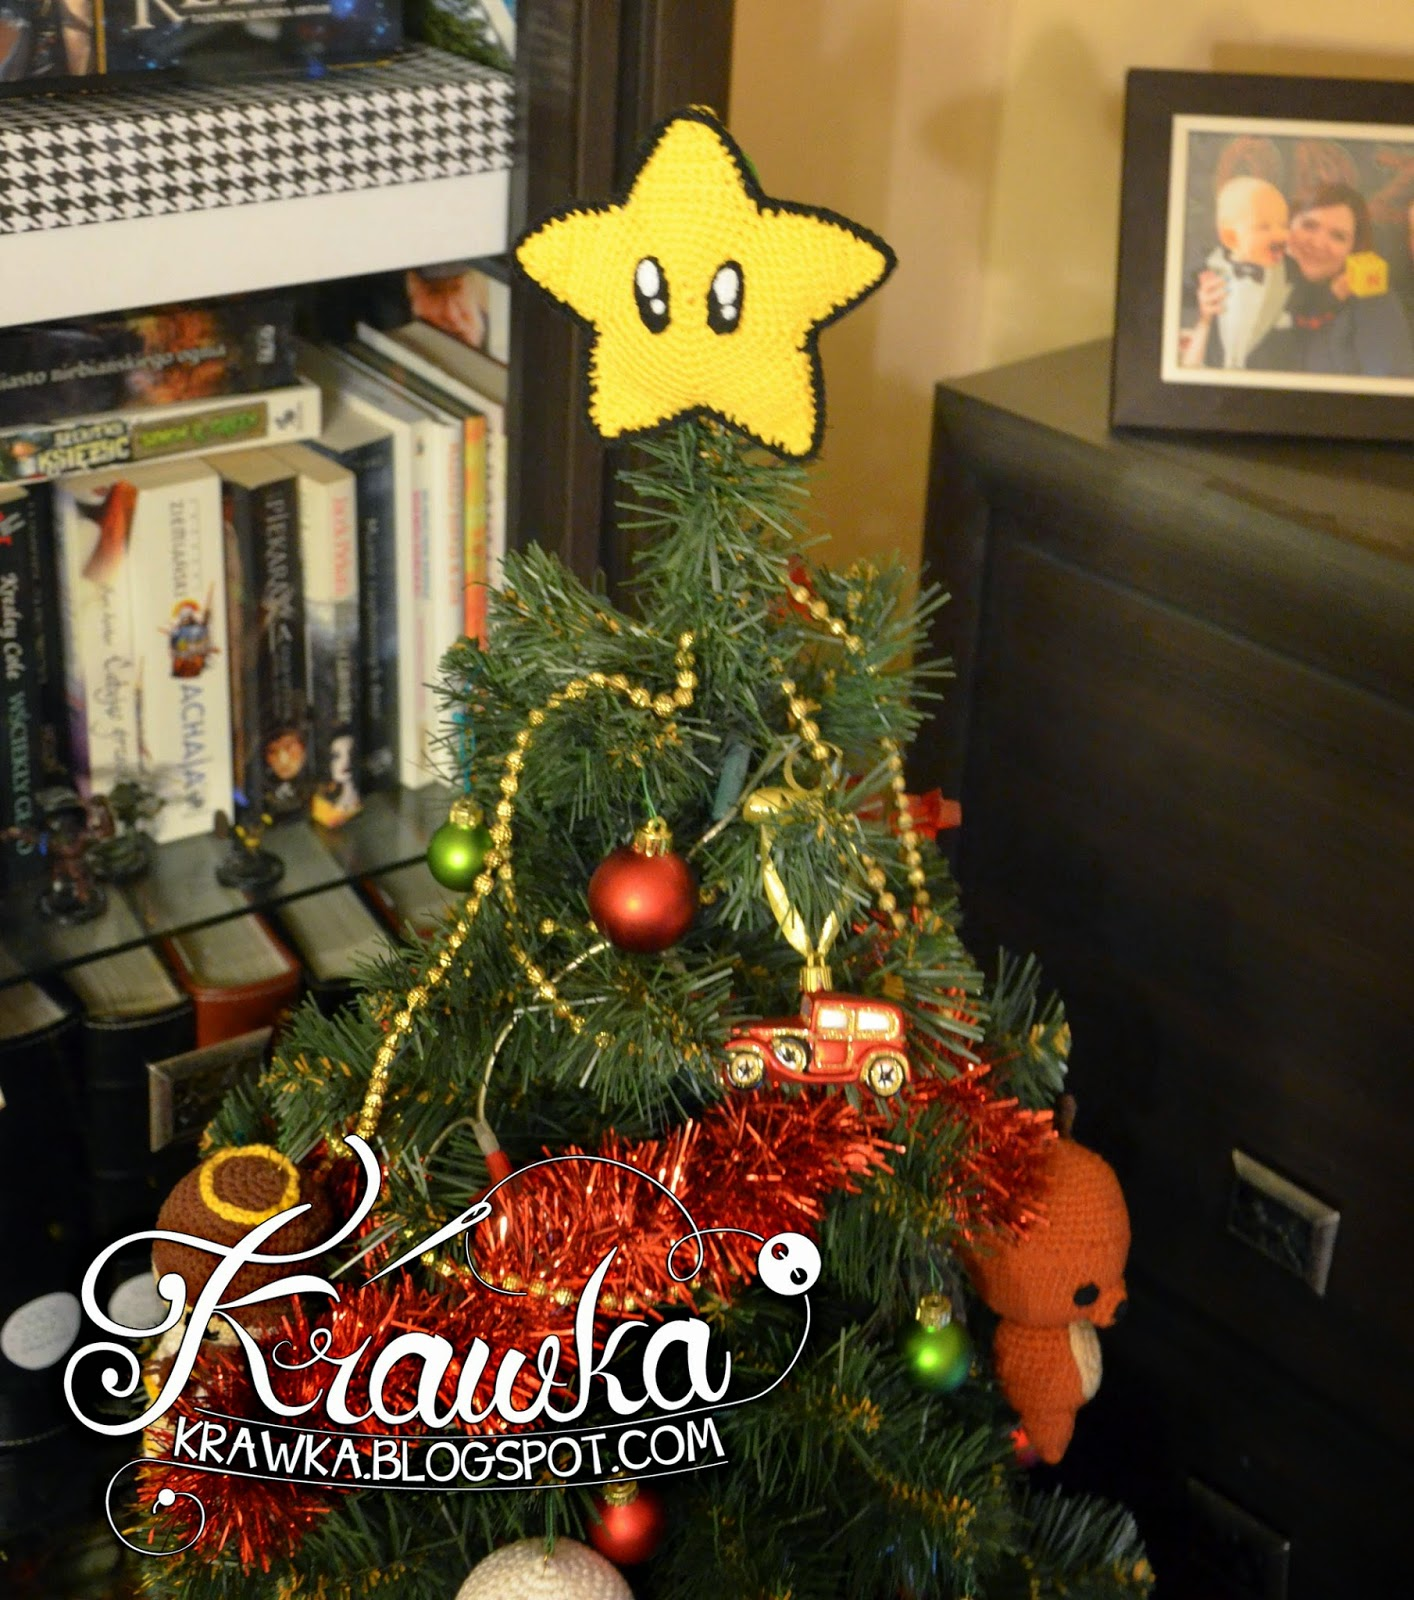 Krawka: Crochet Christmas Tree Ornaments: Snowman, Reindeer, Angels, Santa and Santa's hot wife with the Mario Star on top of the tree.